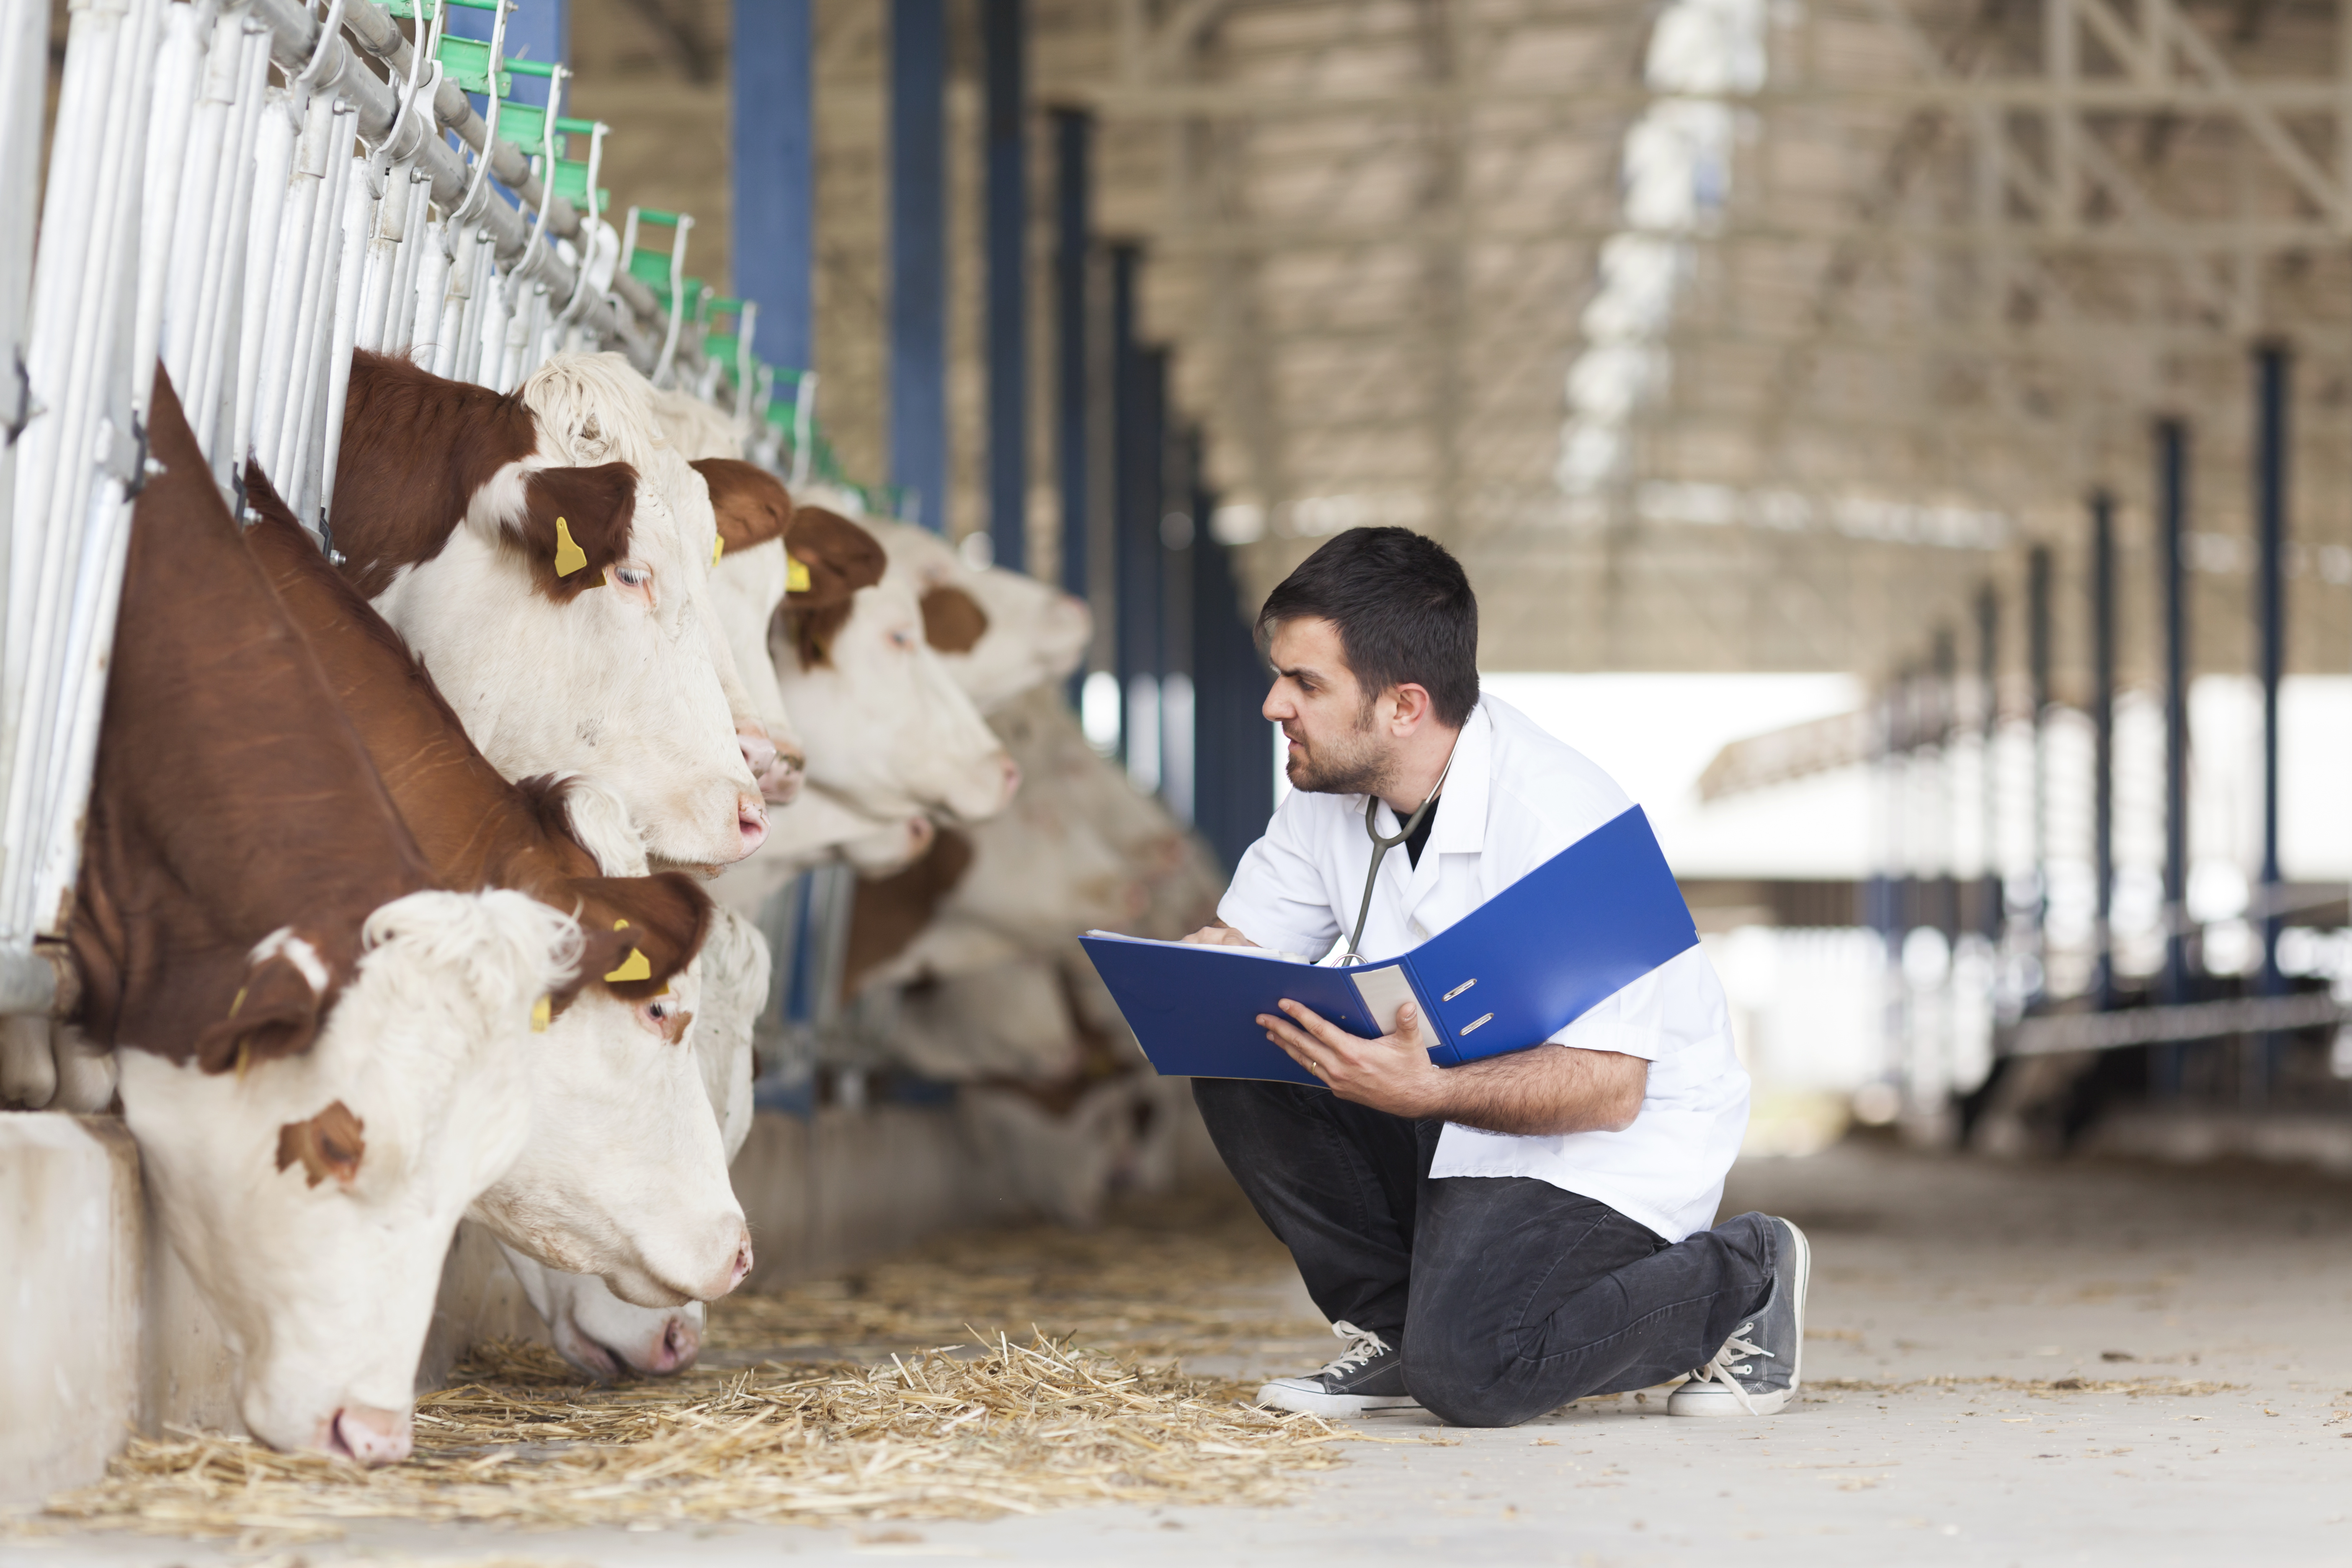 Farm antibiotic sales continue to fall across Europe and United Kingdom